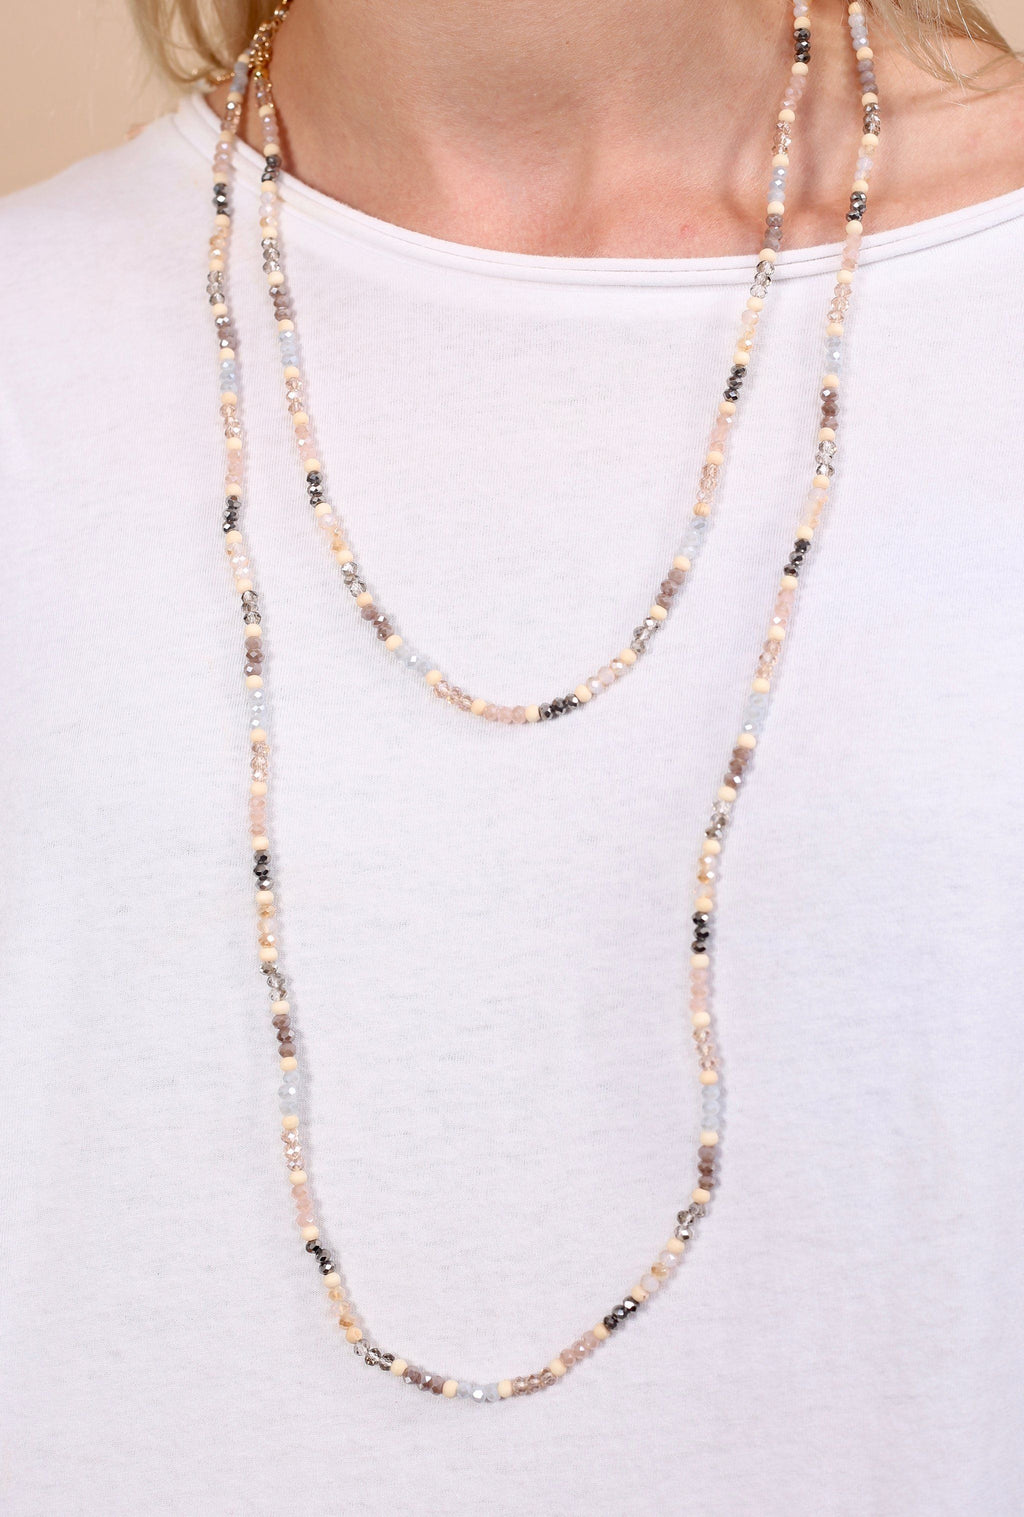 Sawyer Long Natural Beaded Necklace - Caroline Hill